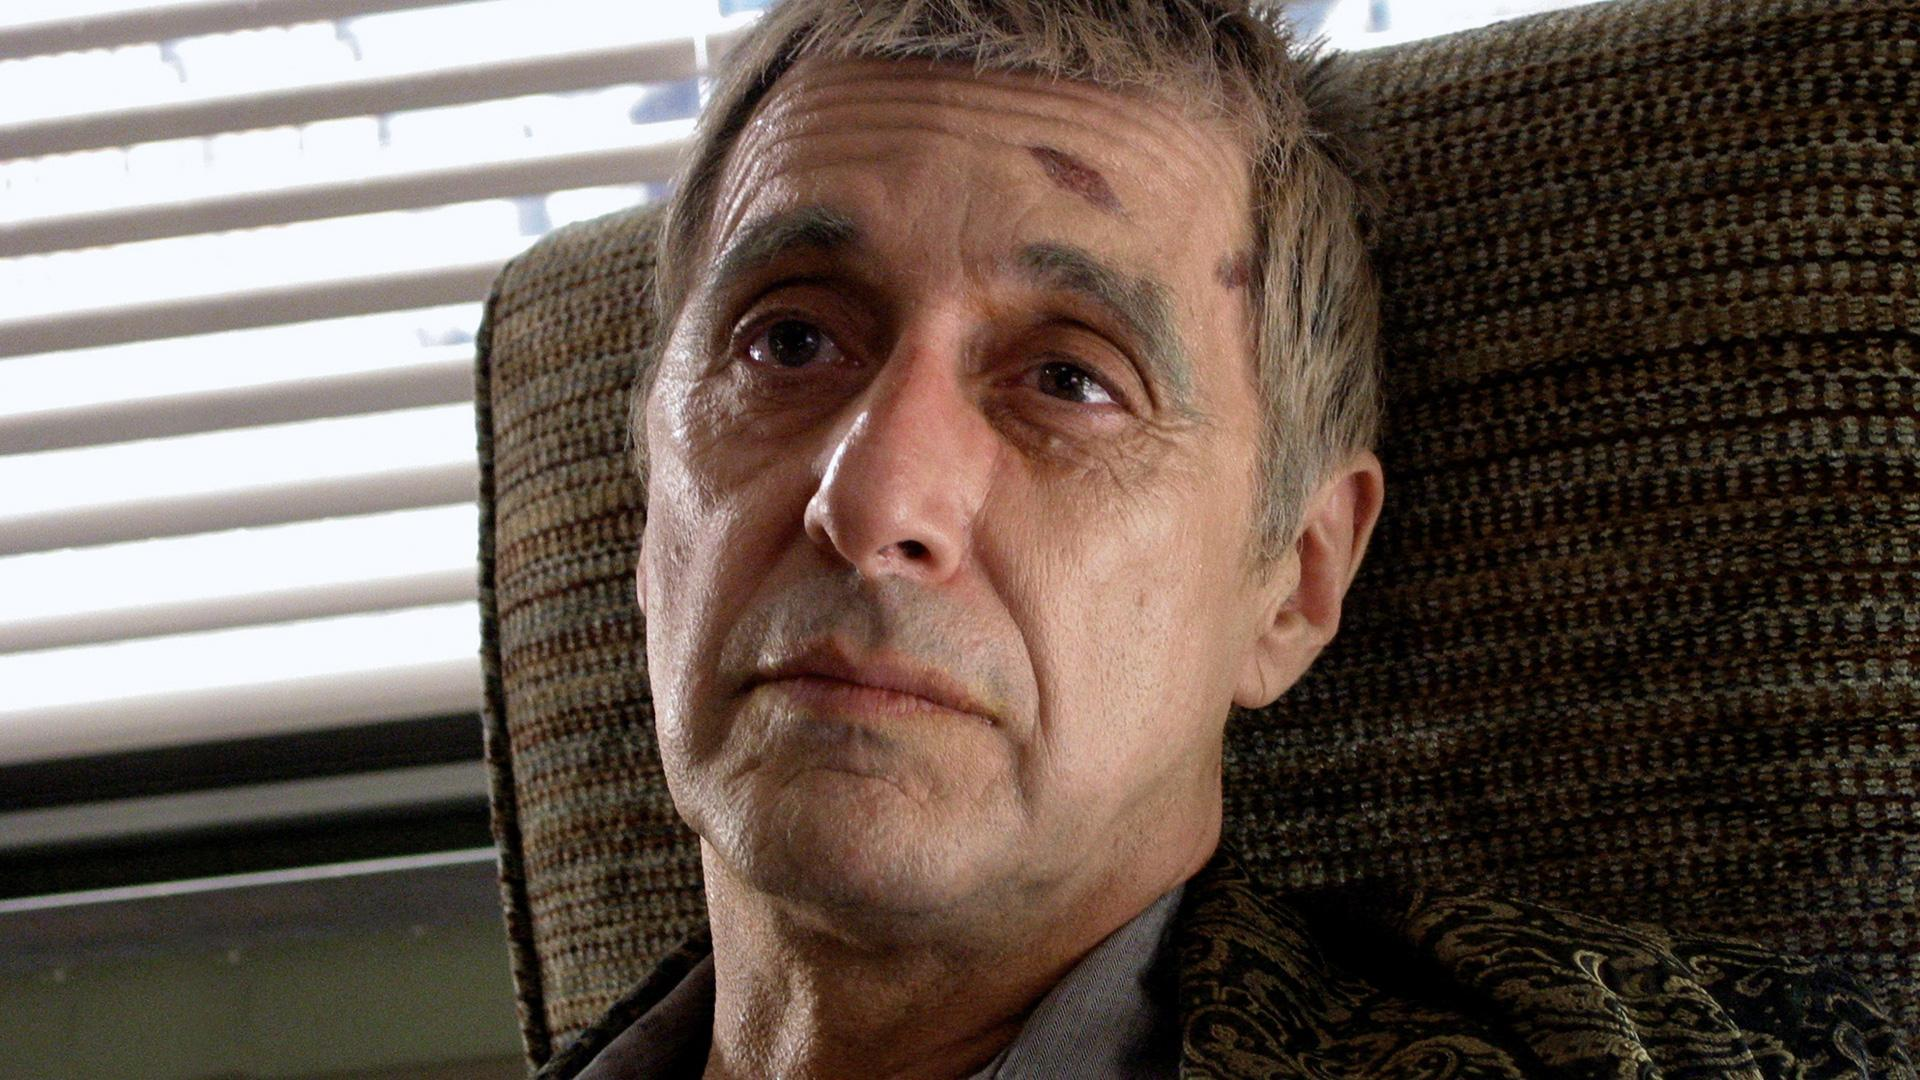 Al Pacino as Roy Cohn, the real-life conservative lawyer who disguised his own life as a gay man and death of AIDS in Angels in America (2003)